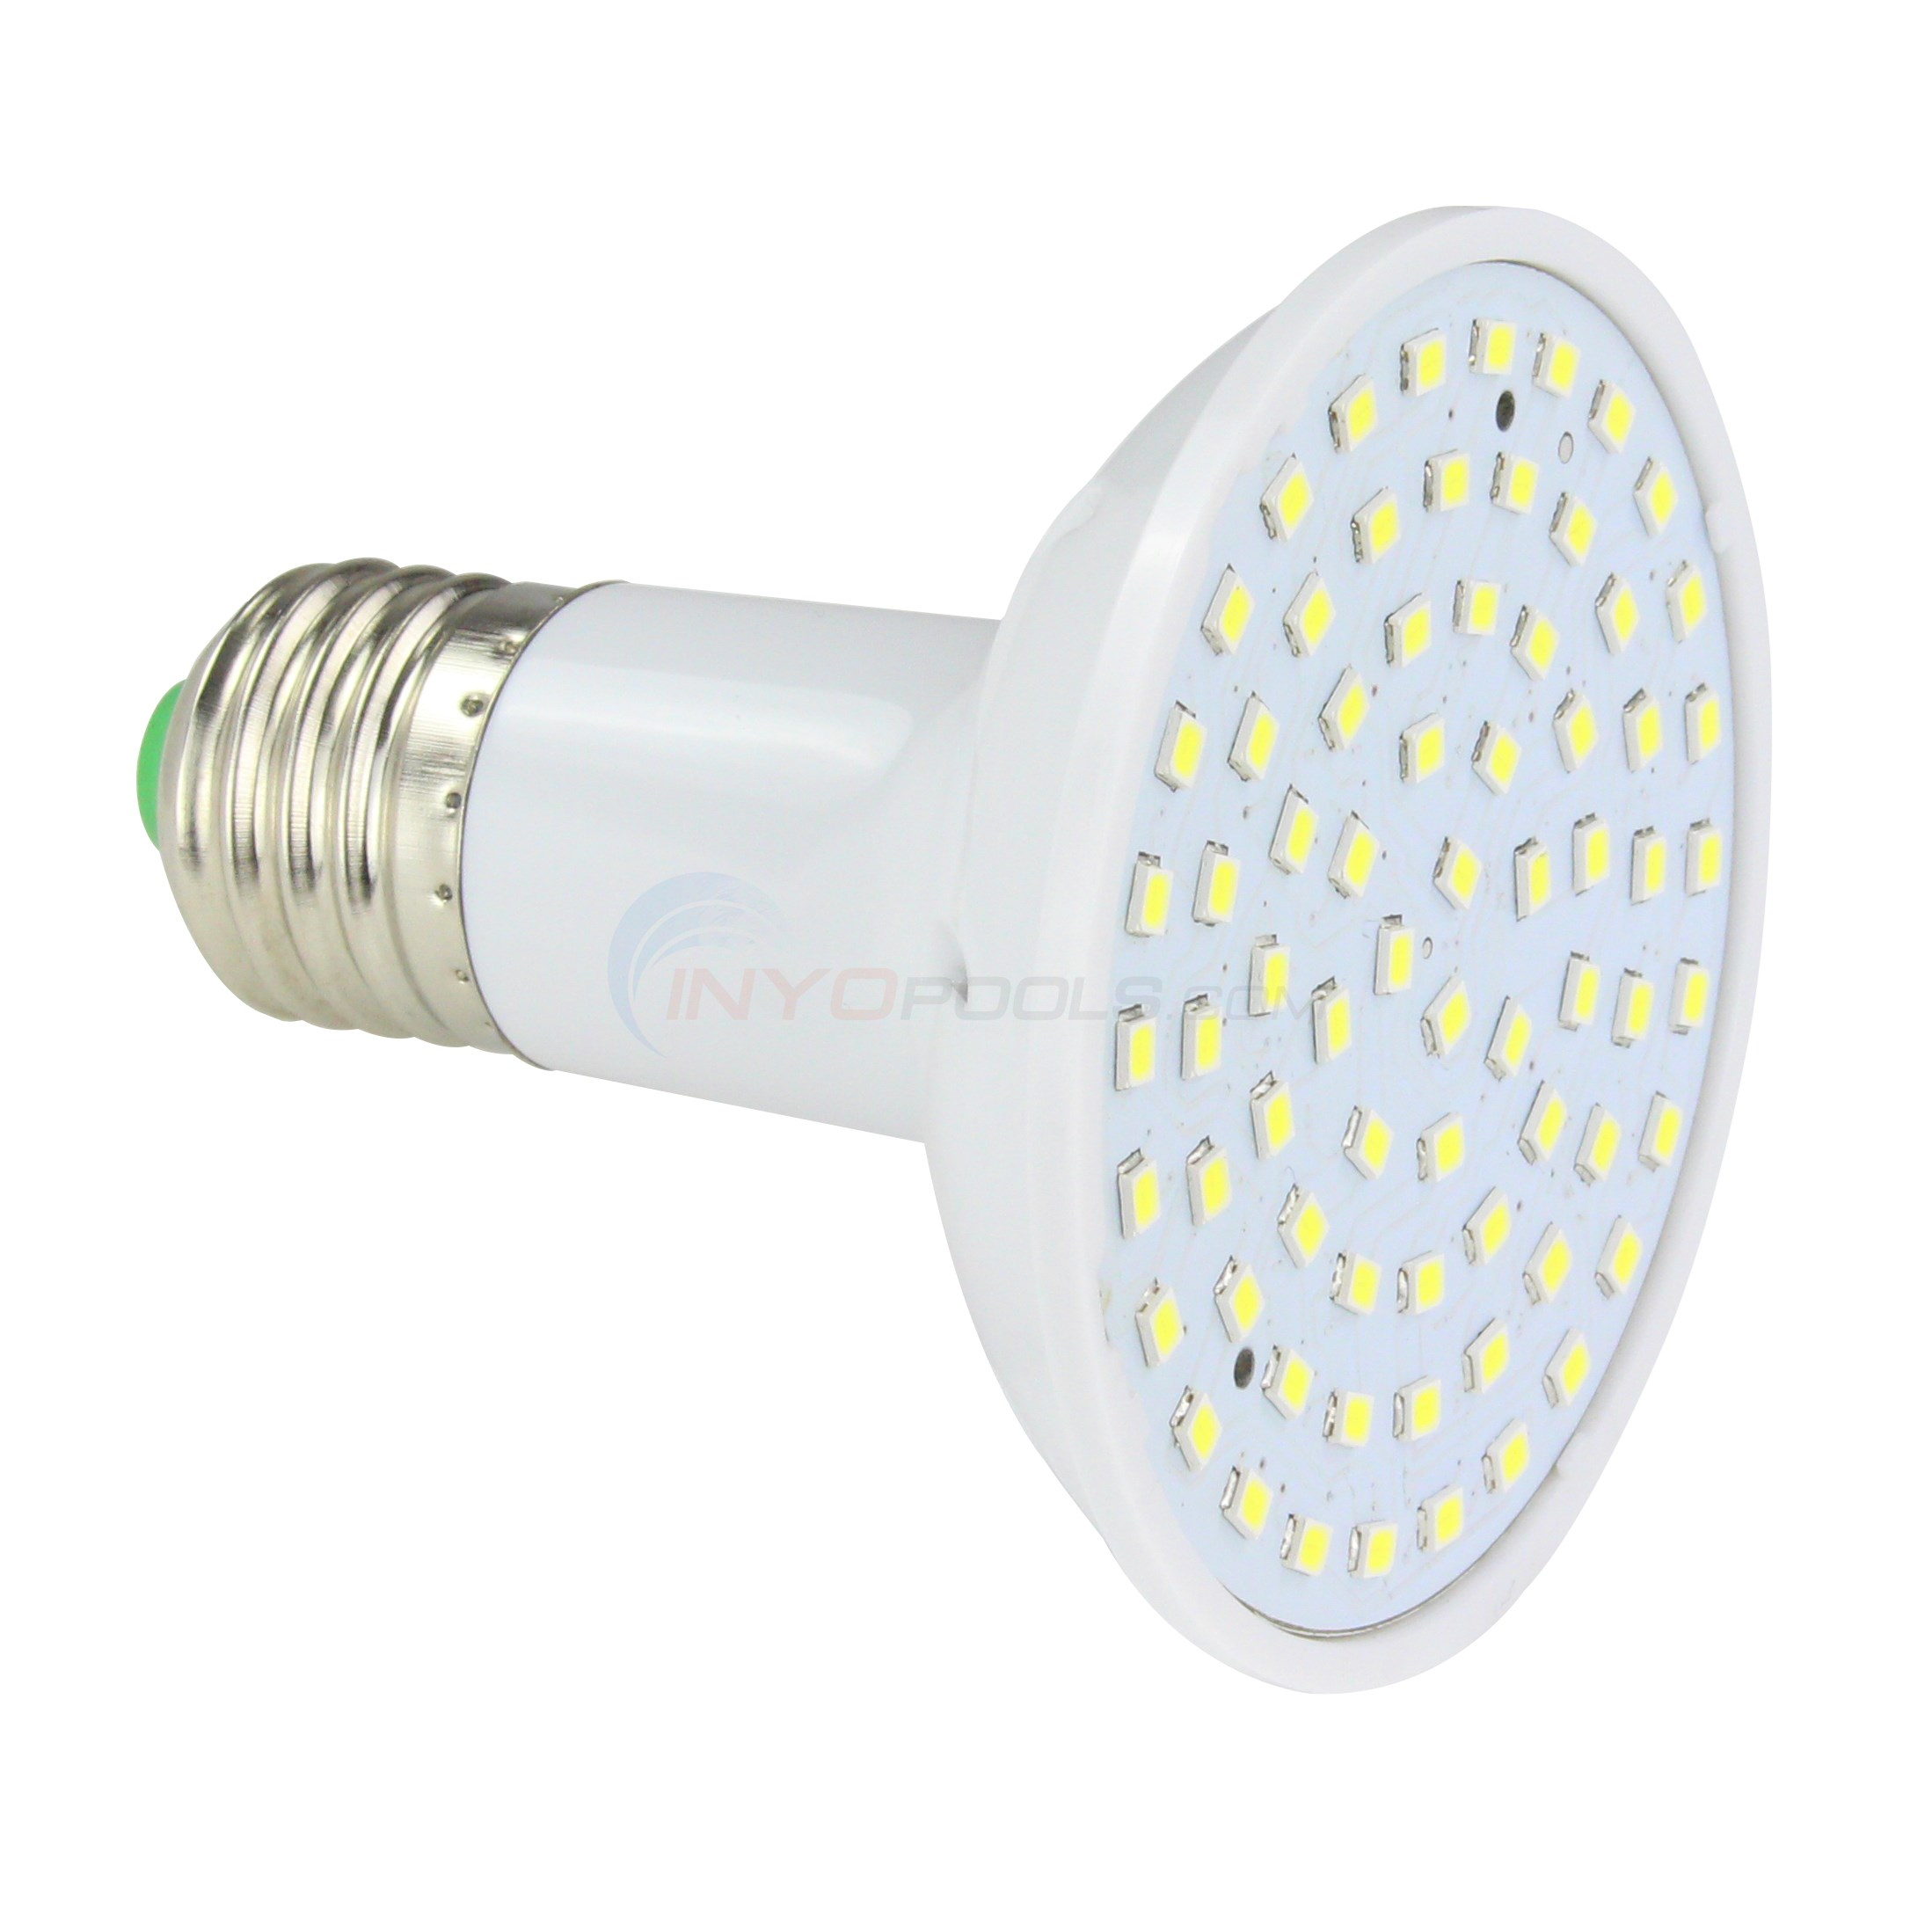 PureLine LED Spa Bulb White Light 120V 5W - PL5847